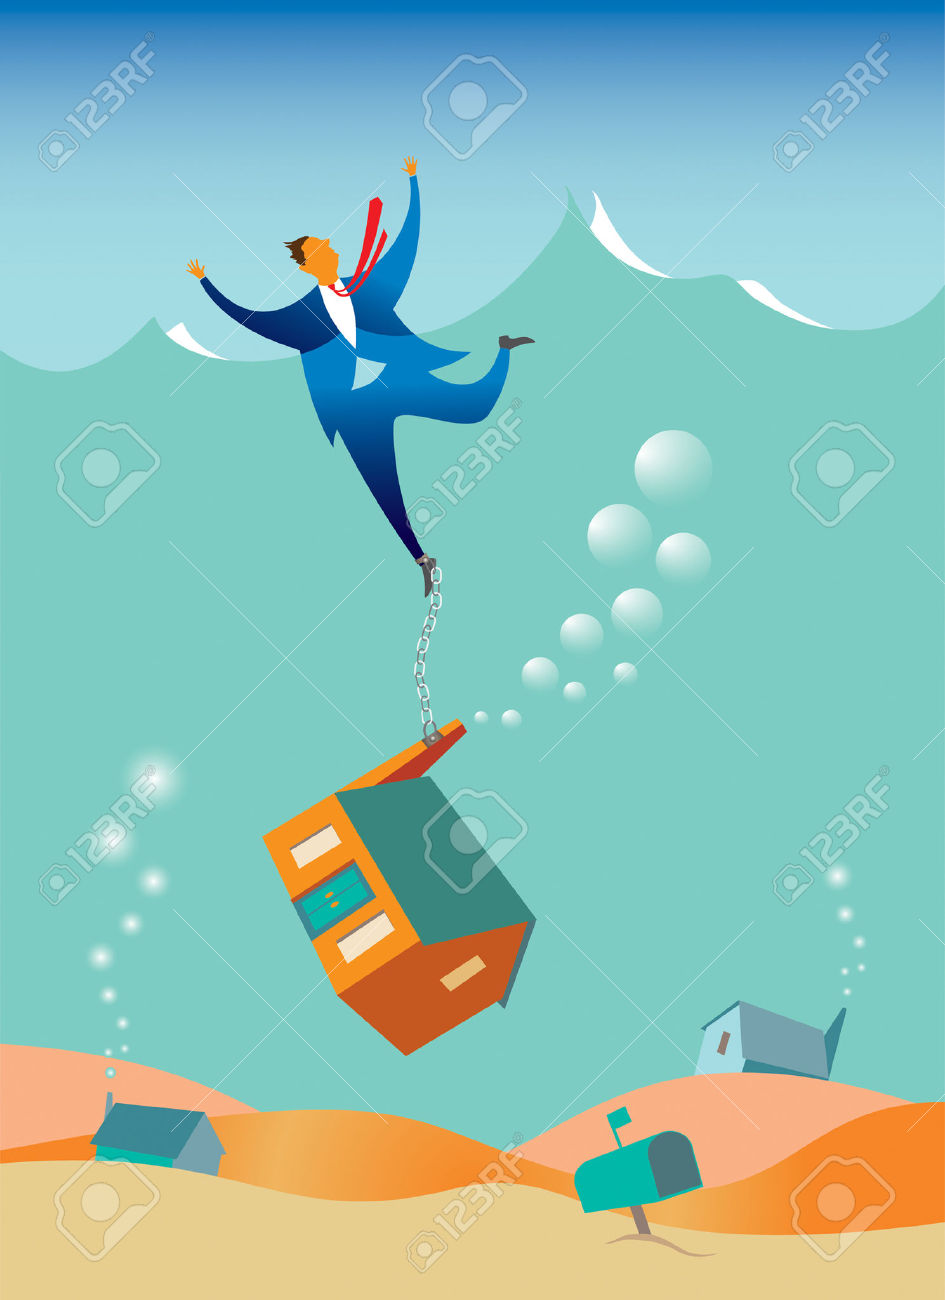 Man Clipart Being Dragged.